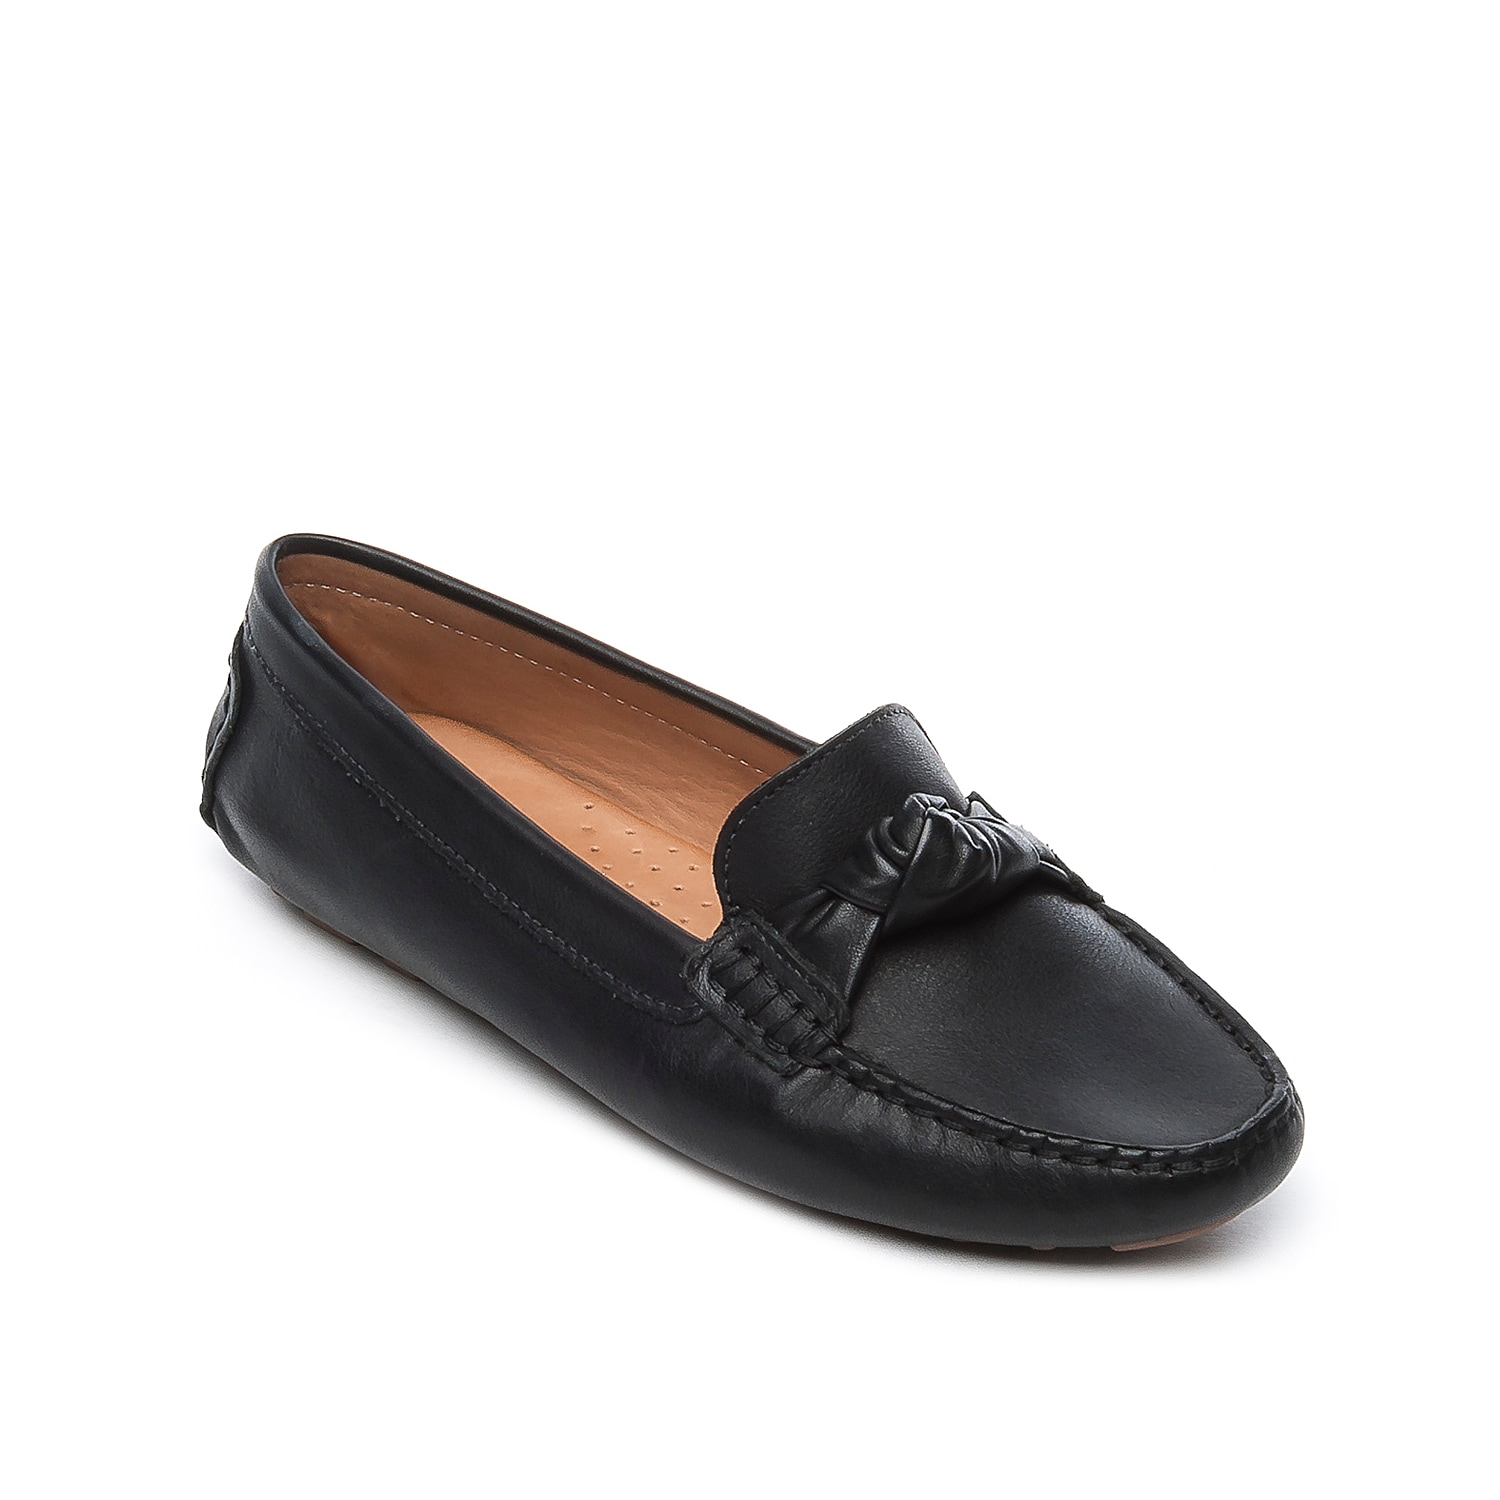 The Janie loafer from Bernardo will take you from work to happy hour. This leather flat is fashioned with a knotted accent that you can pair with anything from midi skirts to skinny jeans and a basic tee.